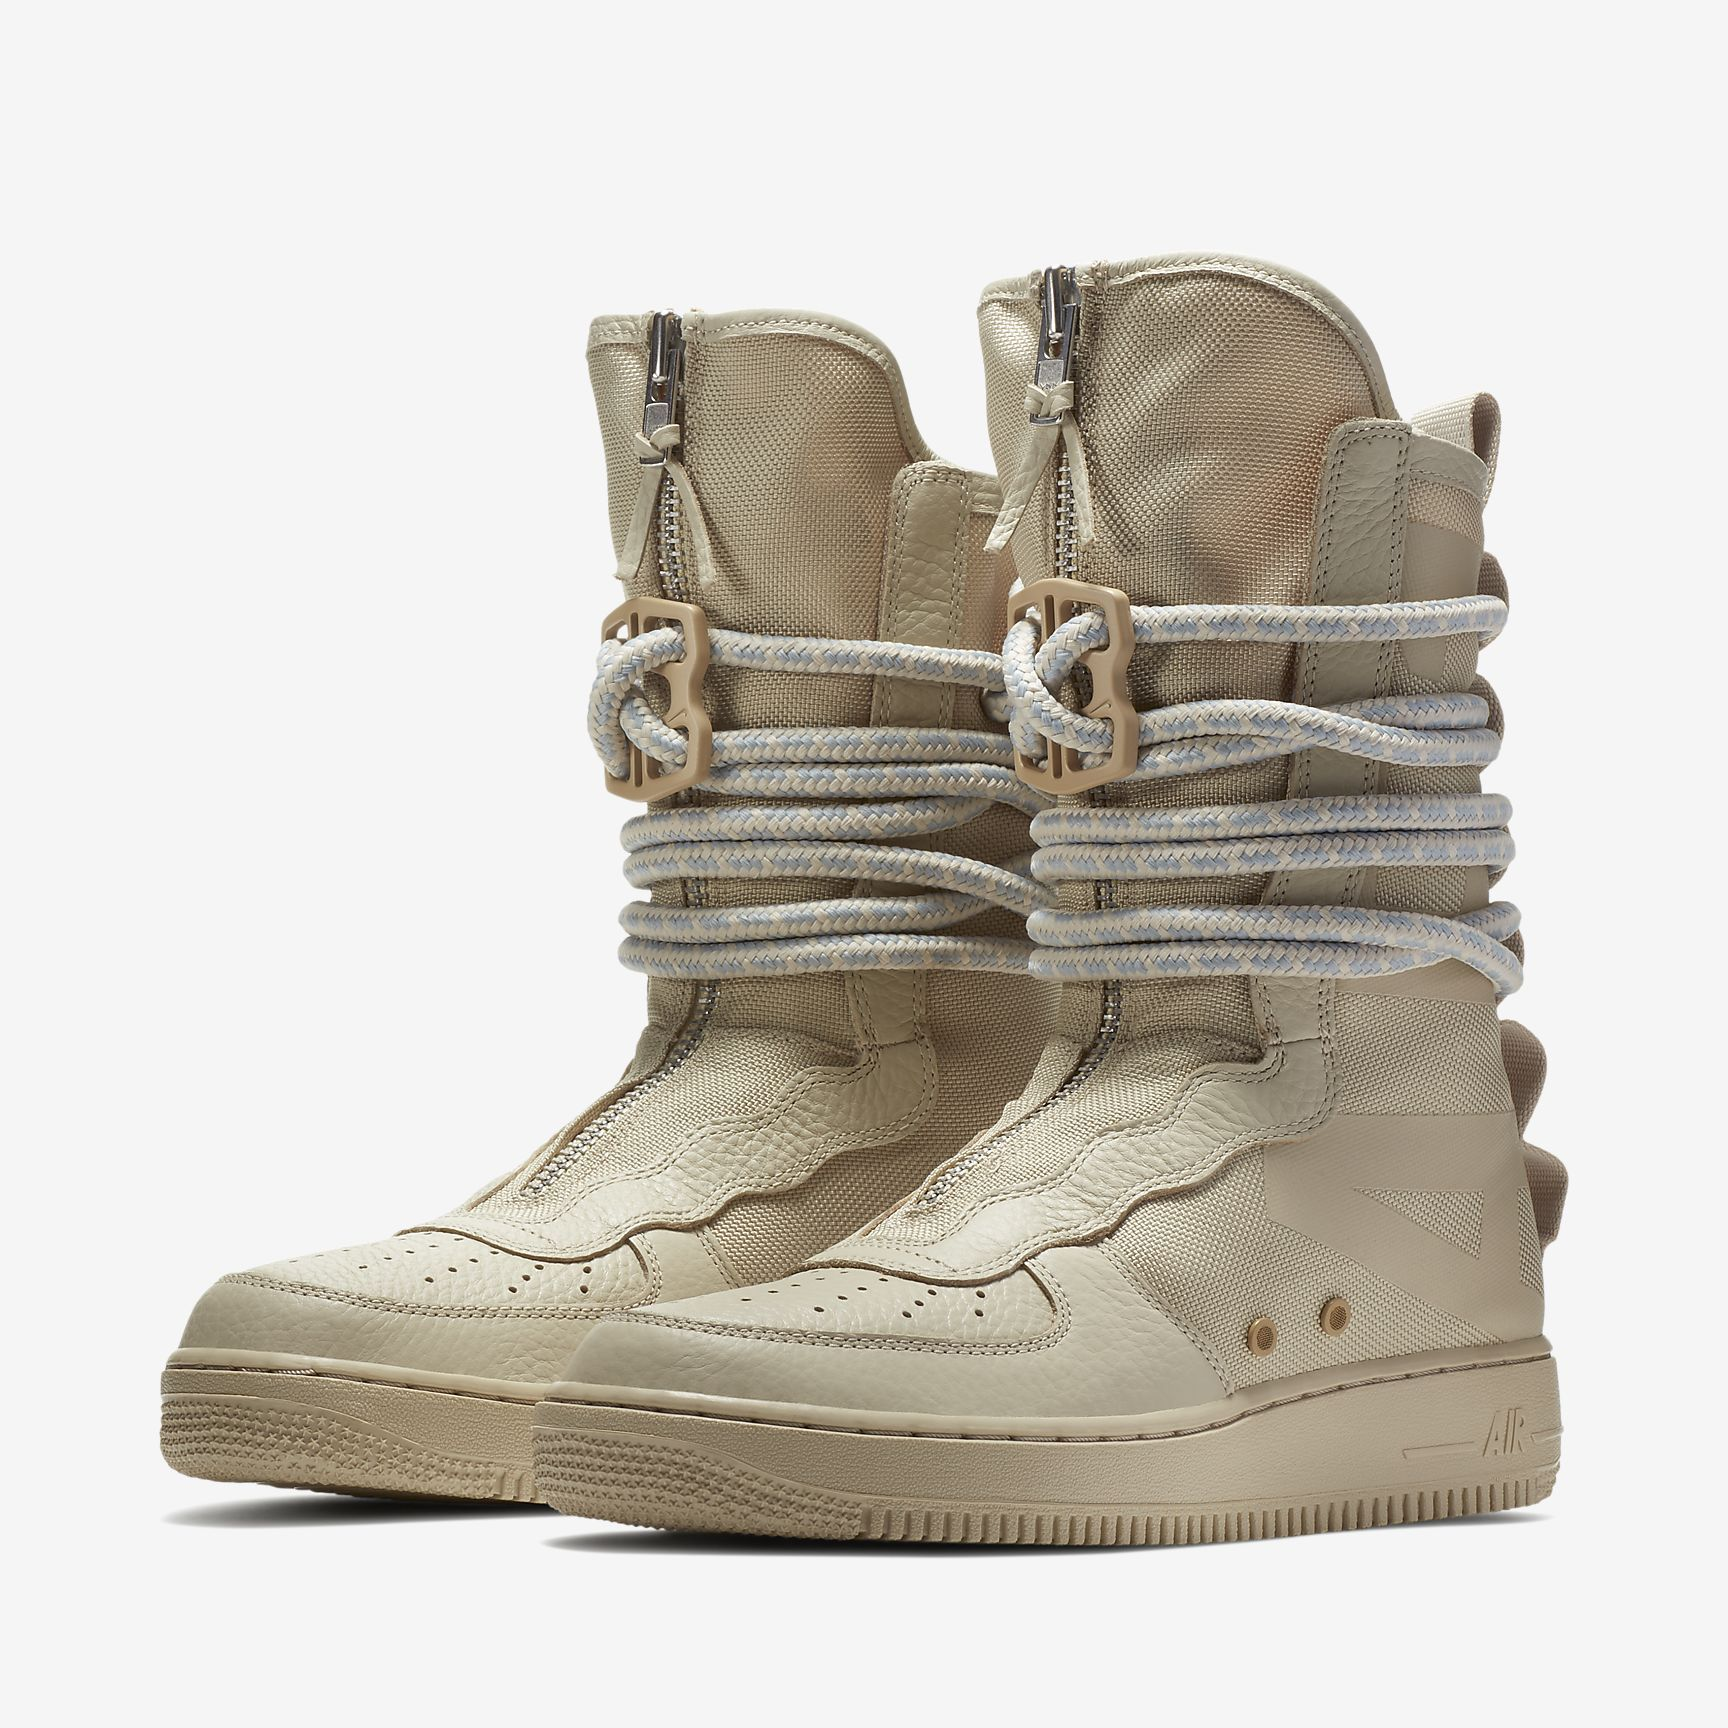 Nike SF Air Force 1 Hi Men s Boot   Shmoot   Nike, Boots и Shoes ba6b2499e34